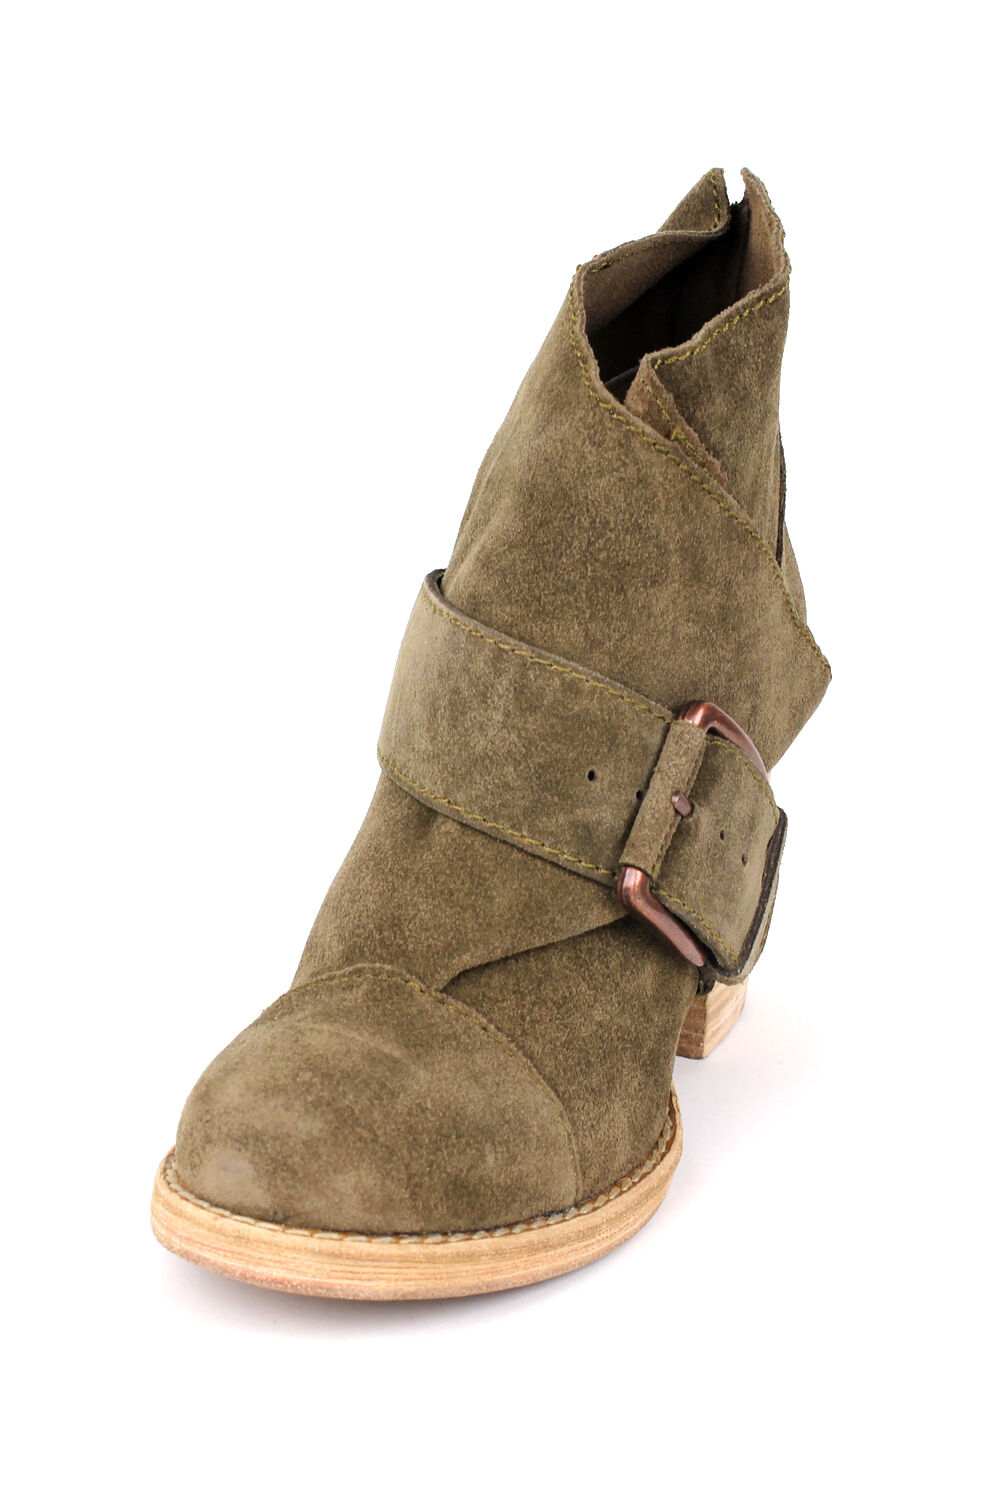 Joe's Jeans Grant Ankle Stiefel 195 Khaki Suede Schuhes Bootie Green NEU Buckle